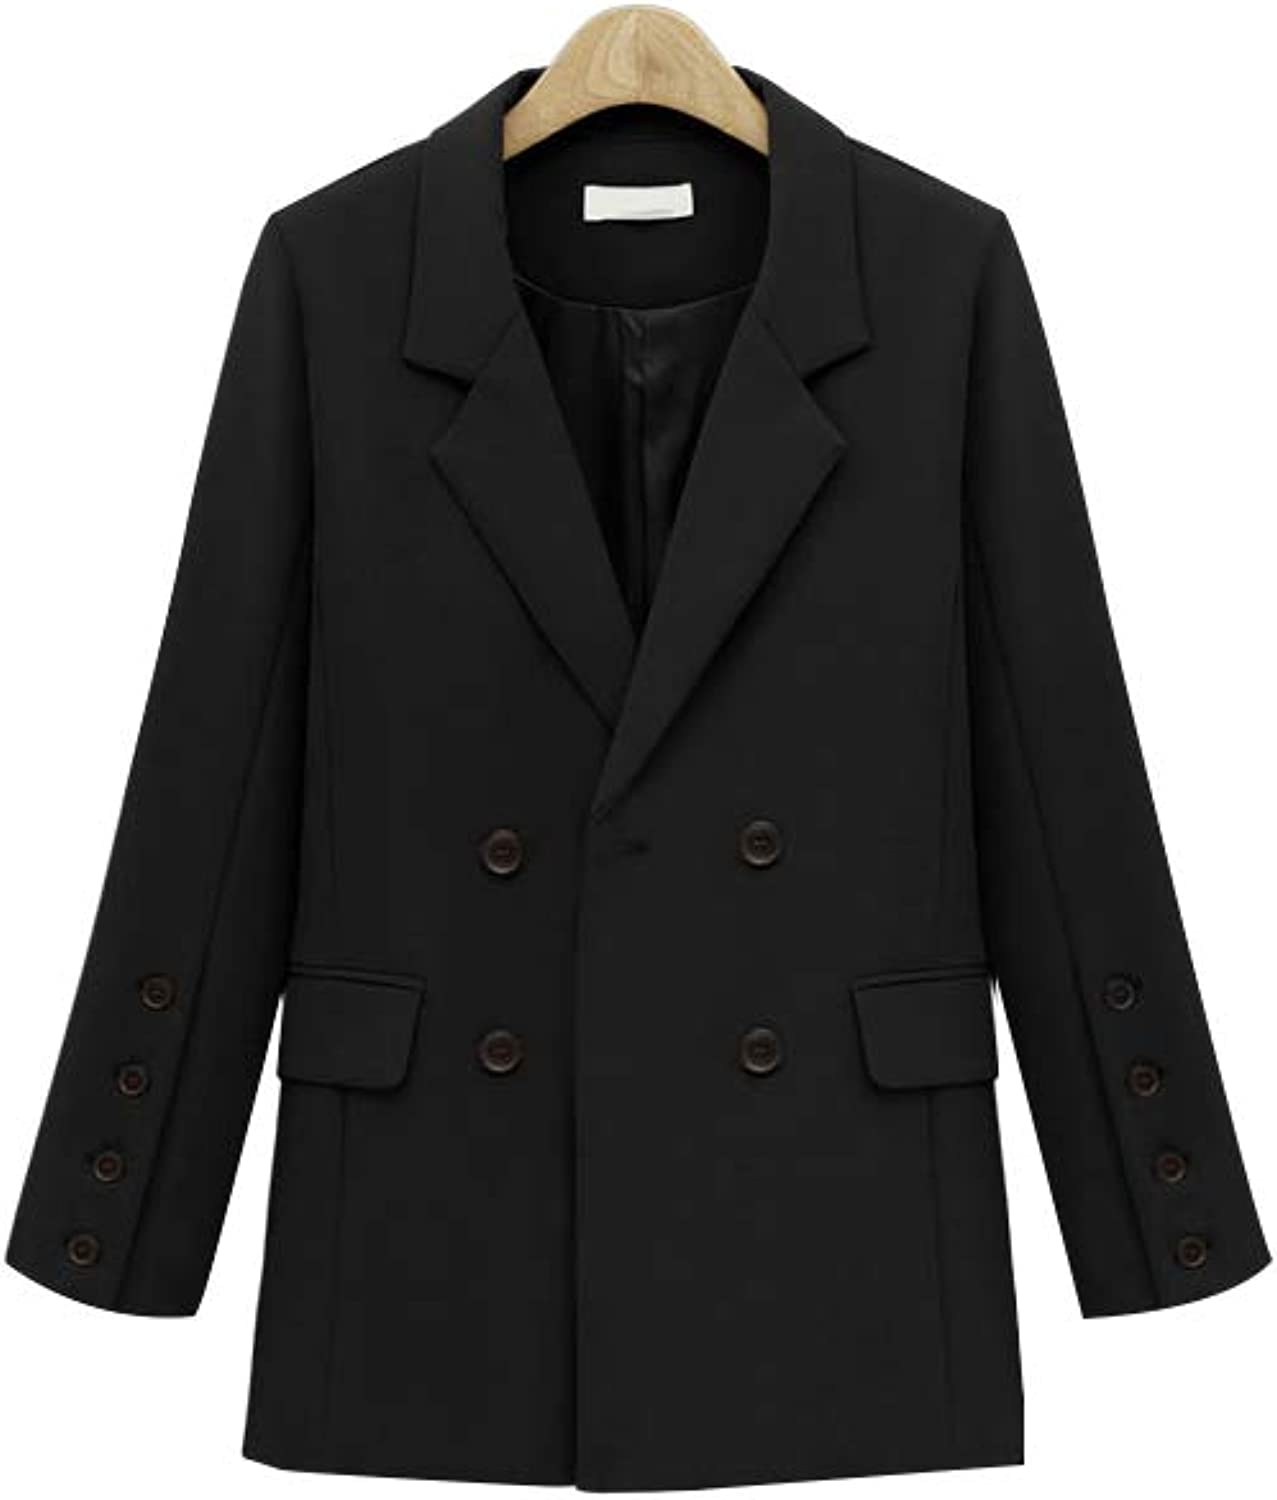 Women Lady Single Breasted Polo Collar Trench Coat Female with Pocket MidLong Long Sleeve Casual Style Office Jacket Outwear